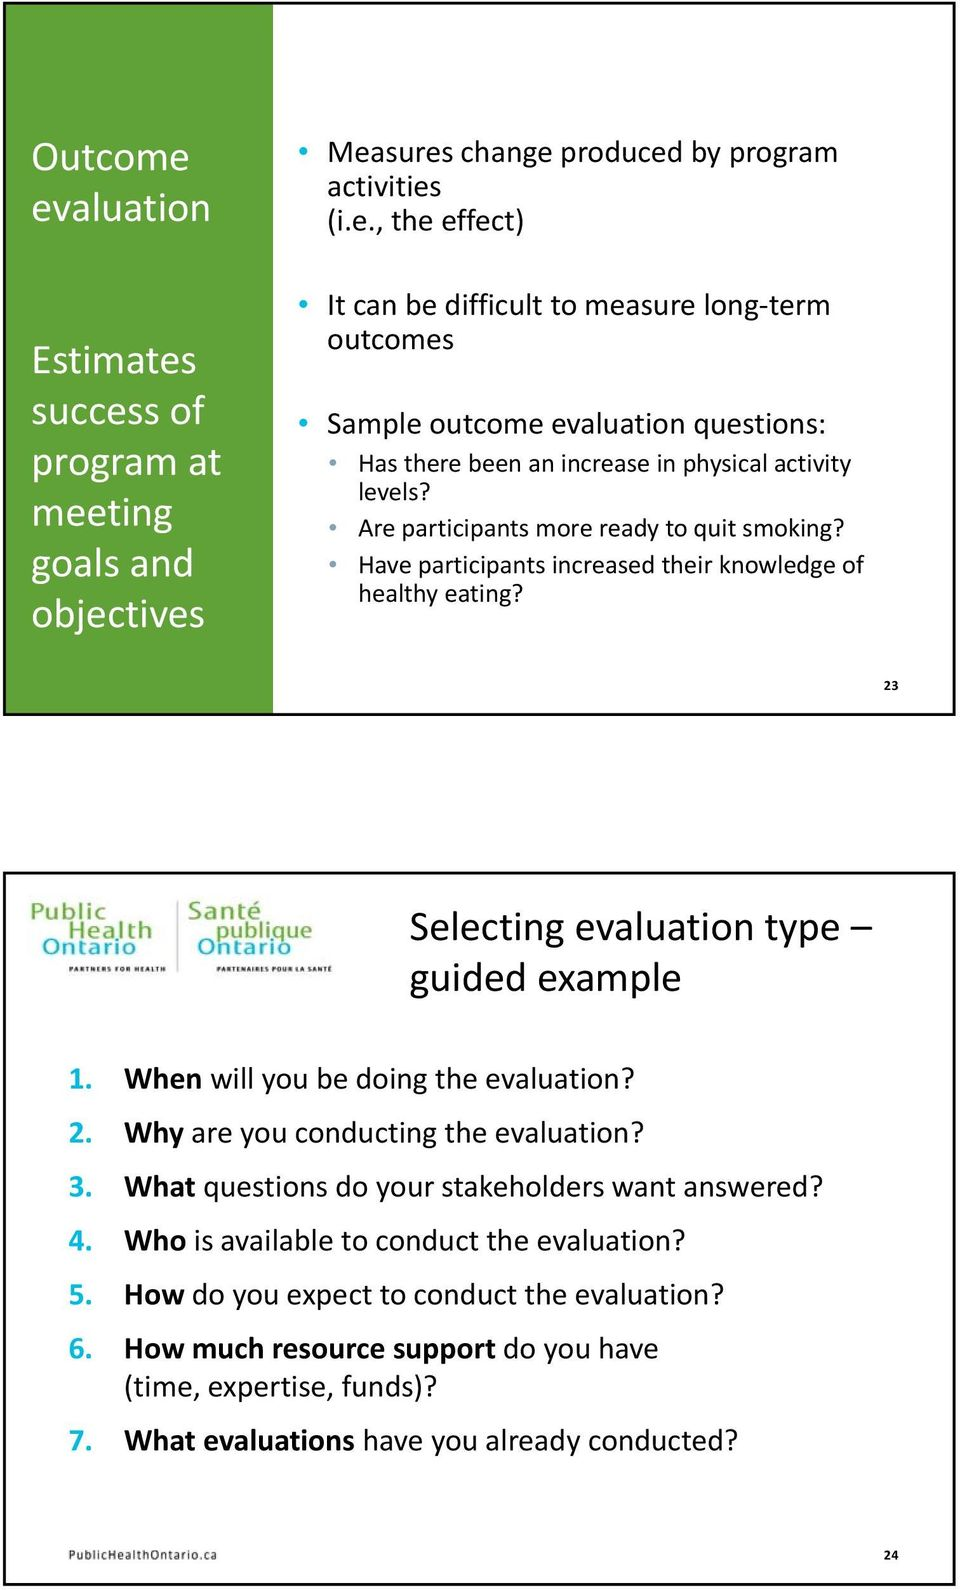 3. What questions do your stakeholders want answered? 4. Who is available to conduct the evaluation? 5. How do you expect to conduct the evaluation? 6.